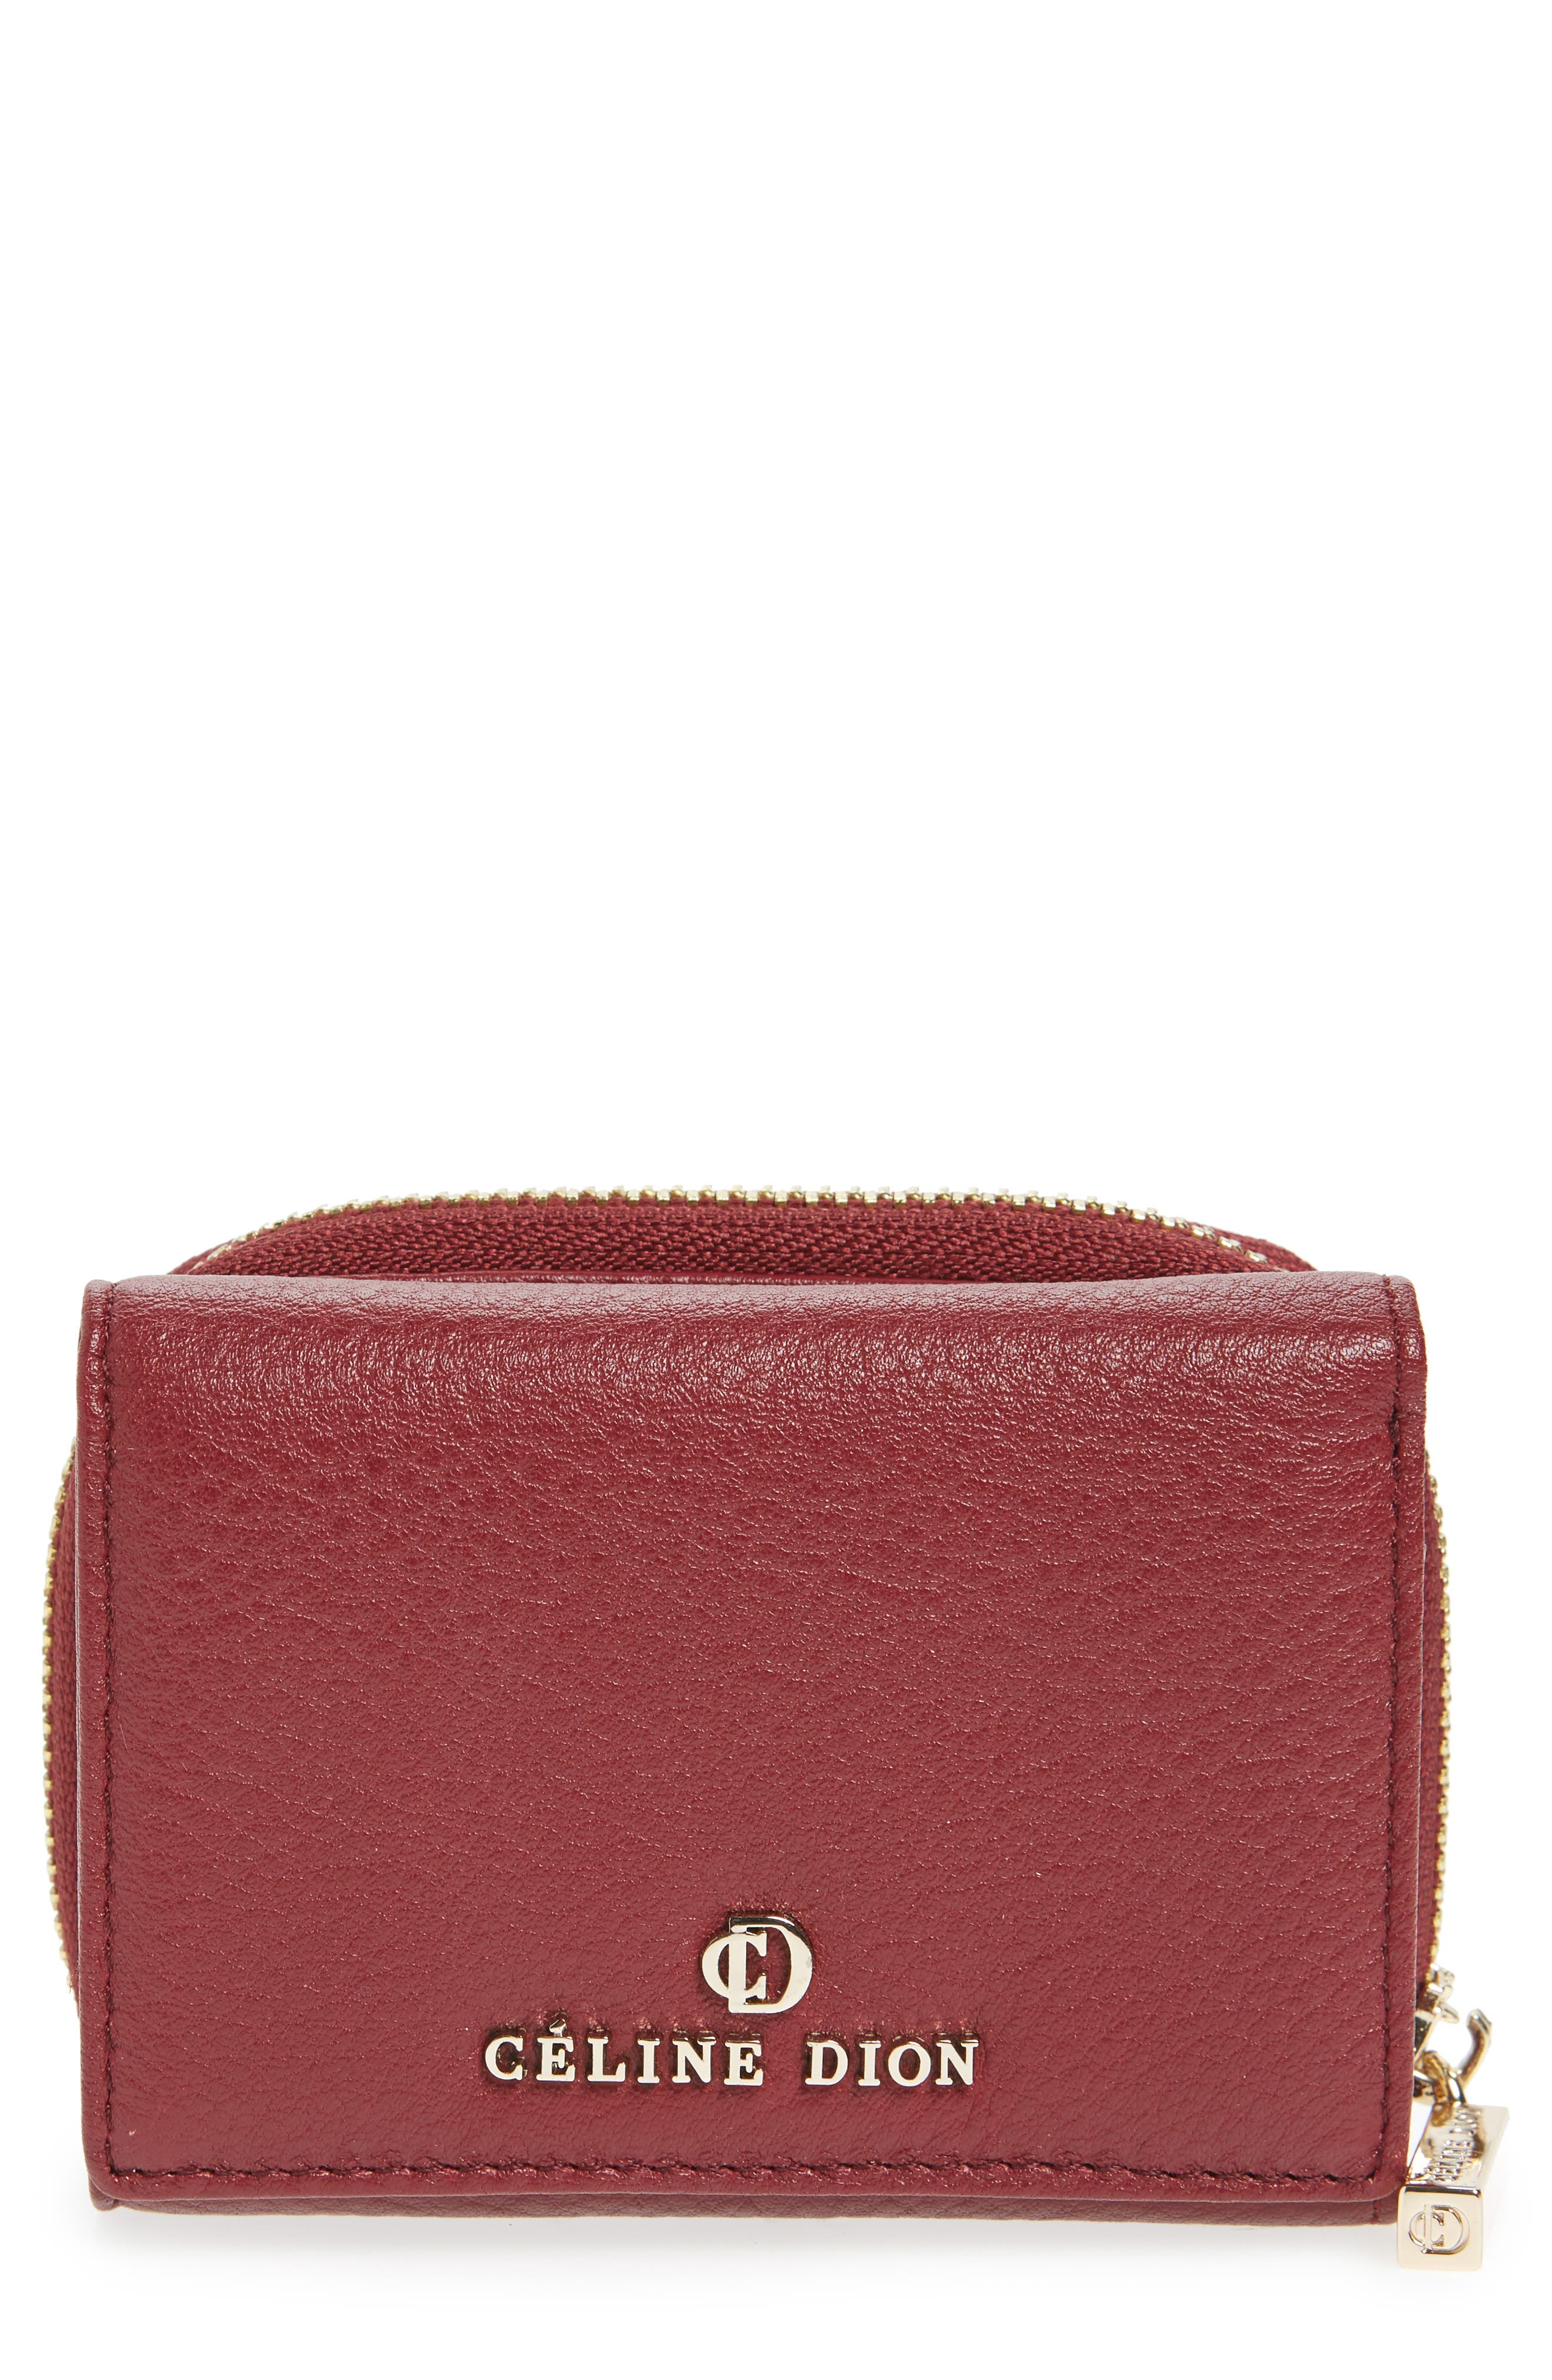 Céline Dion Small Adagio Leather Wallet,                             Main thumbnail 1, color,                             Dark Red